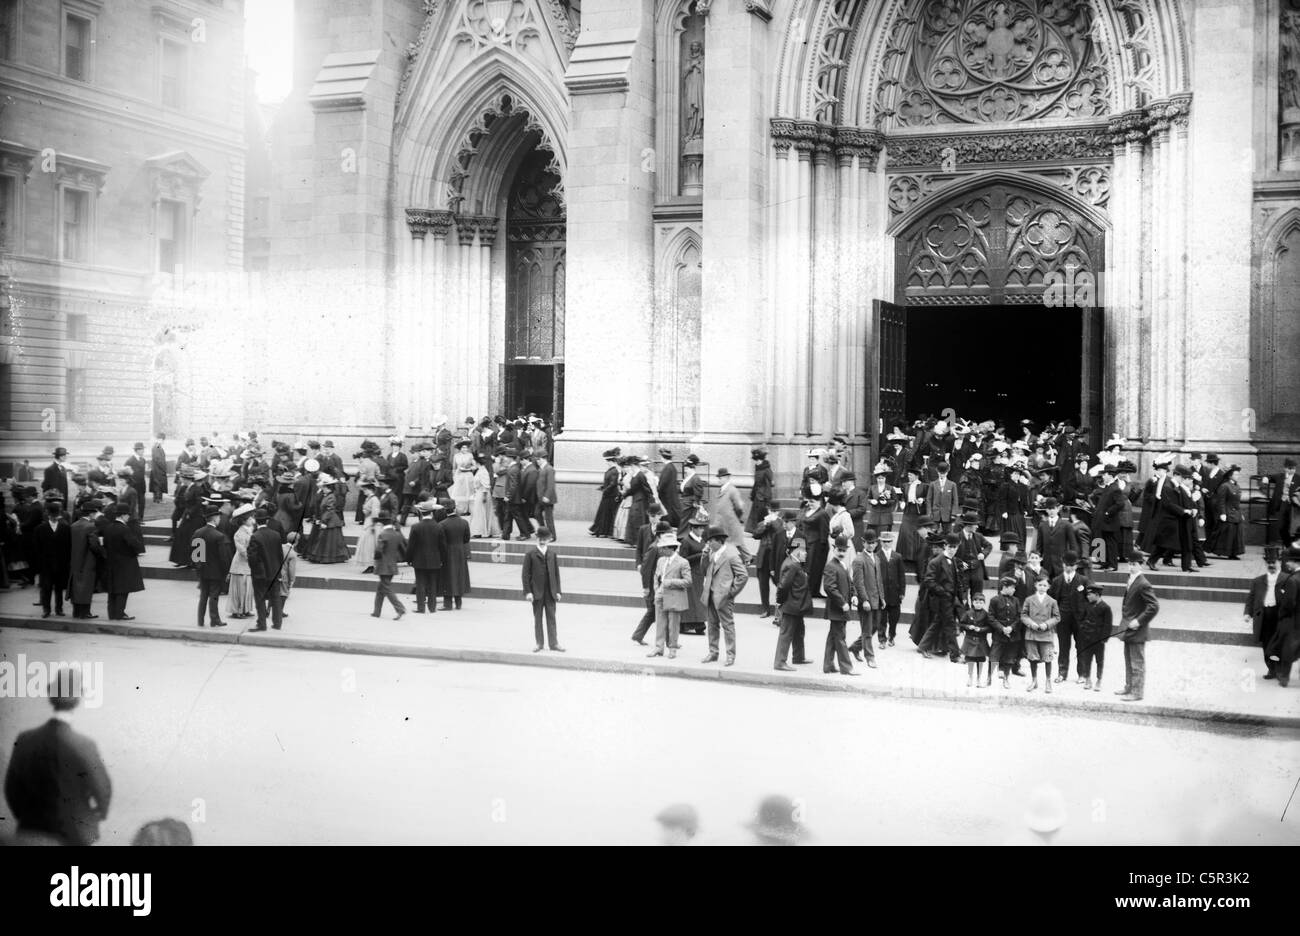 Leaving St. Patrick's Cathedral after Easter Service, 5th Ave., New York City, circa 1900 - Stock Image